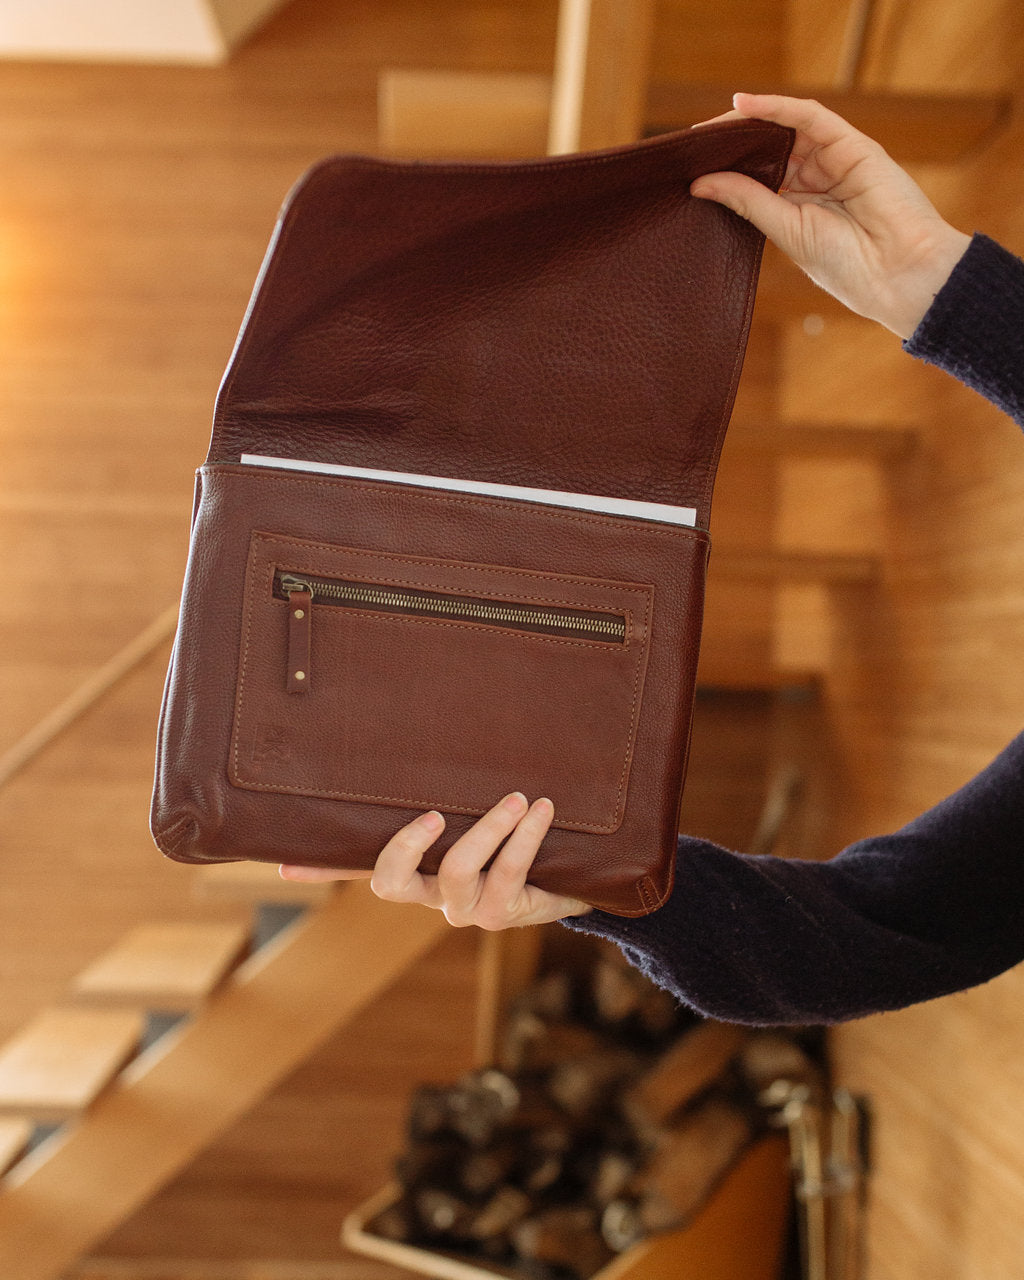 Luxury Leather Goods for Tech